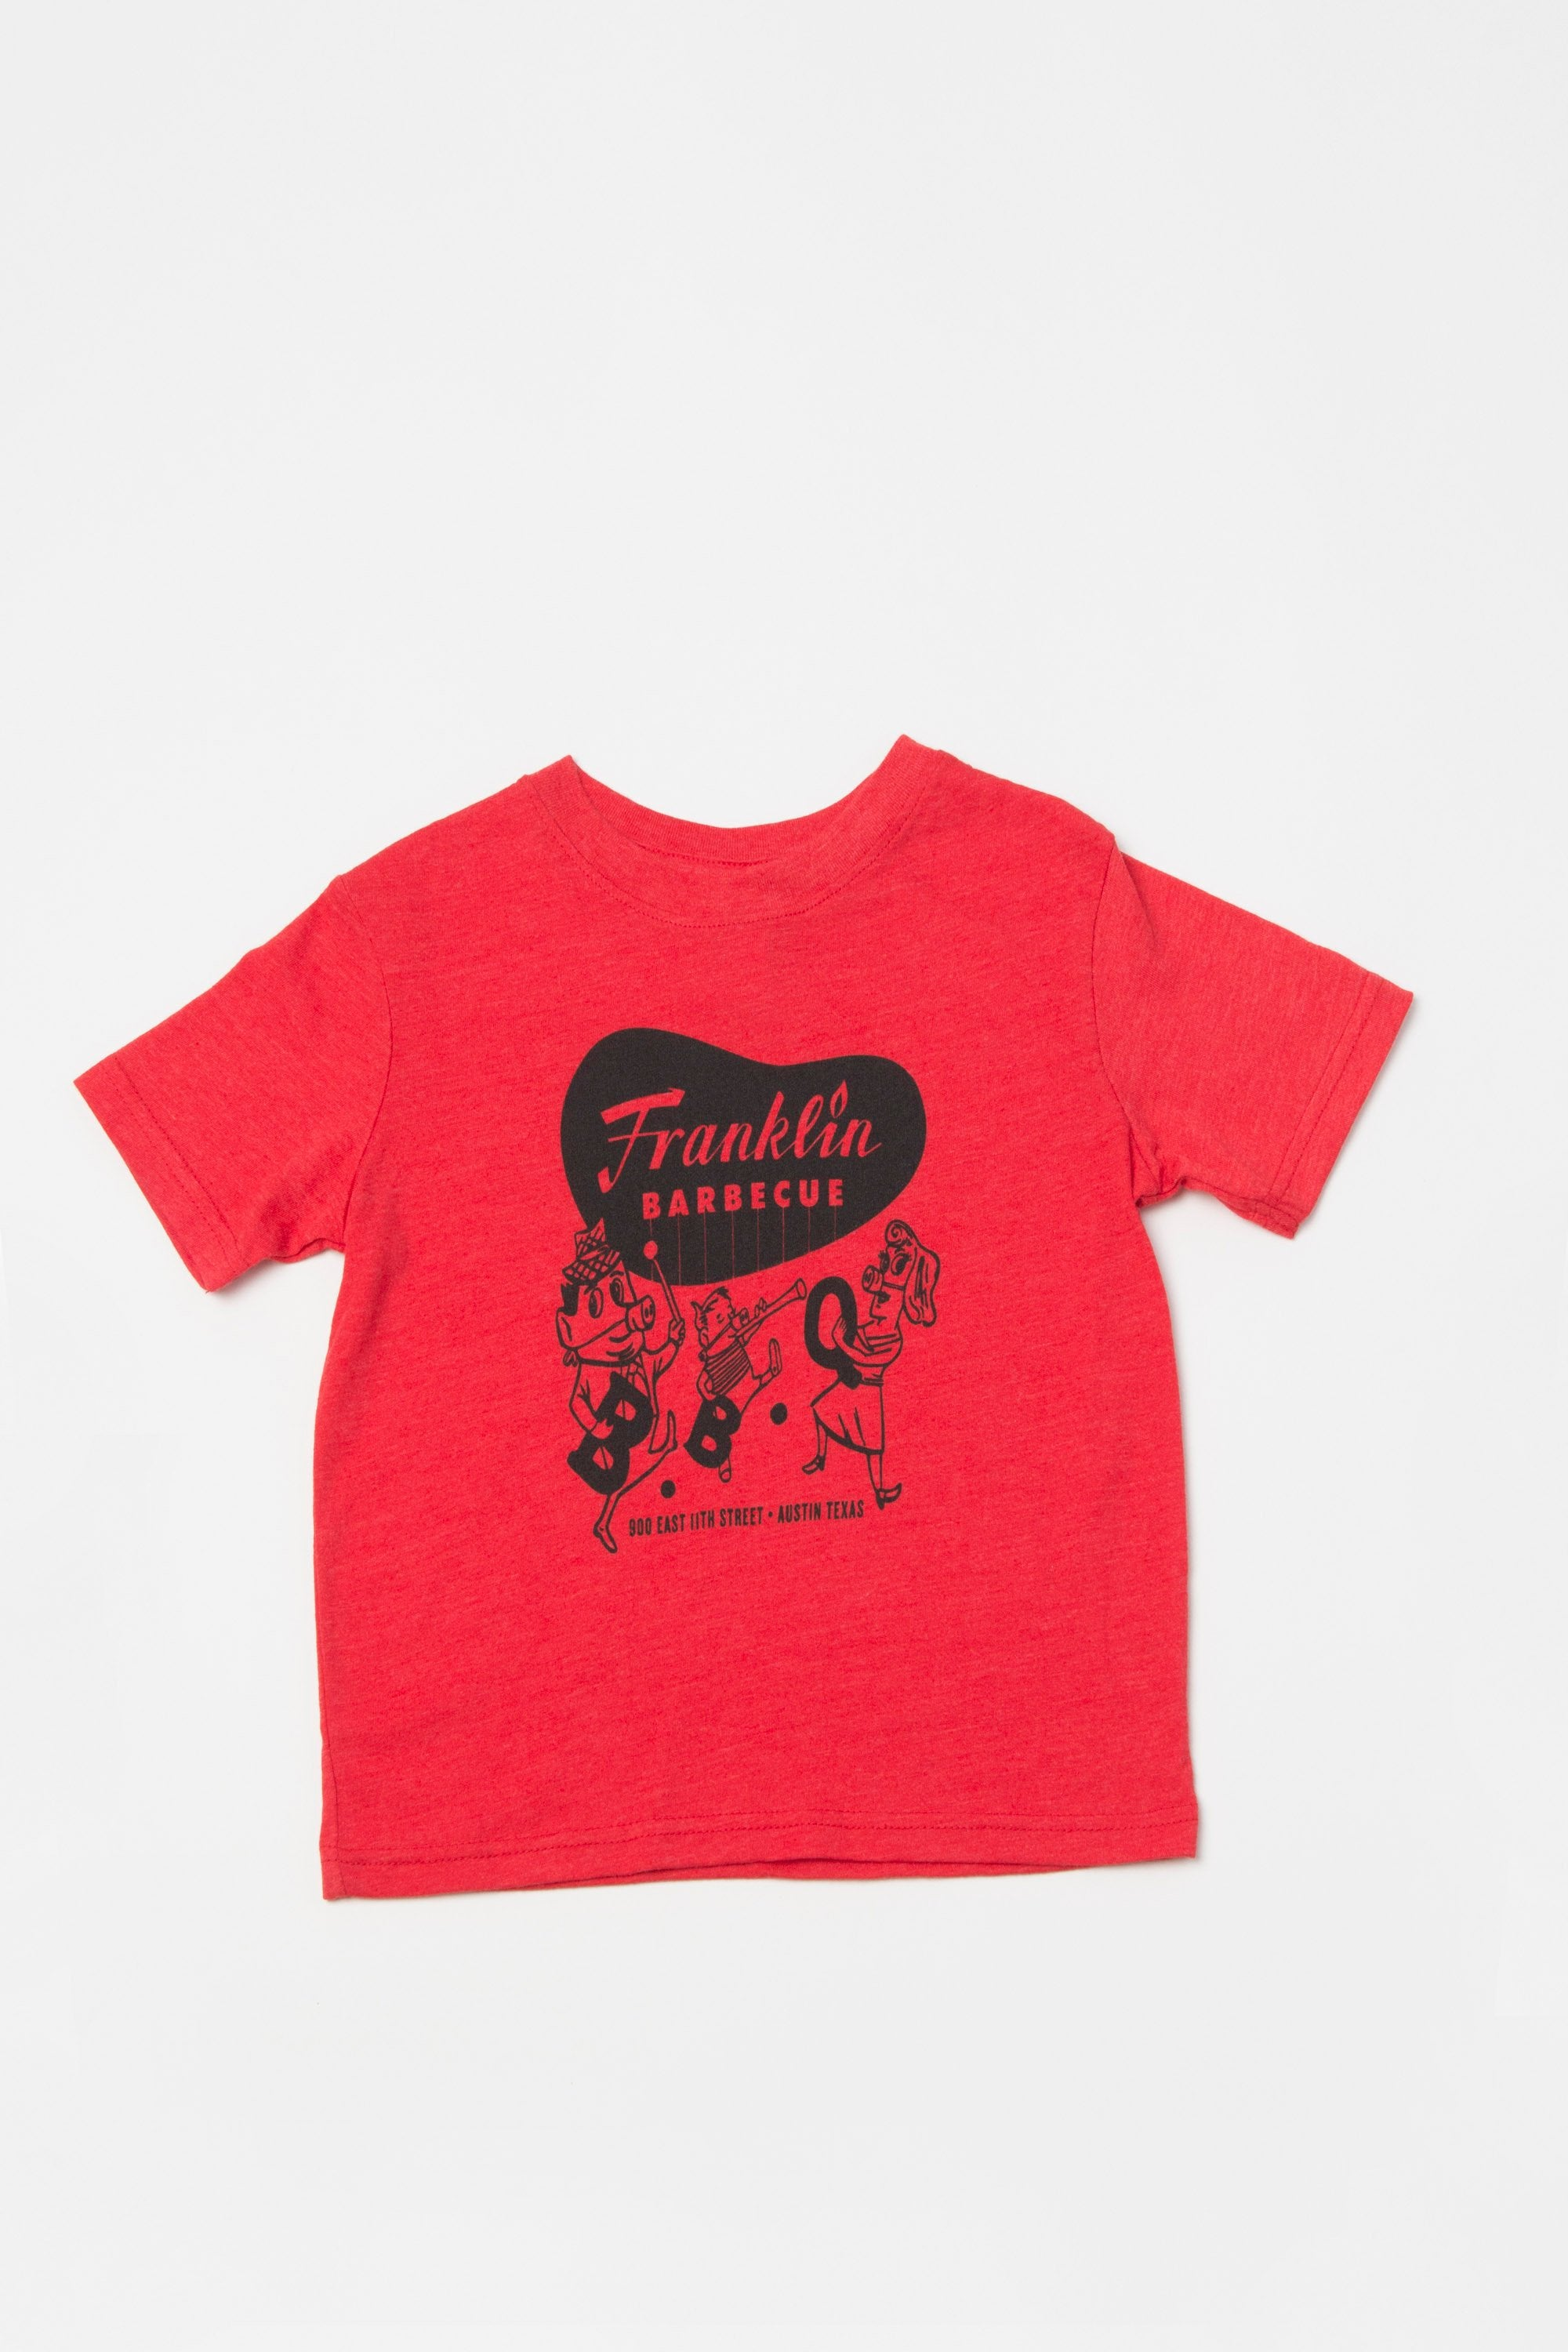 Toddler Kids Franklin Barbecue T-shirt